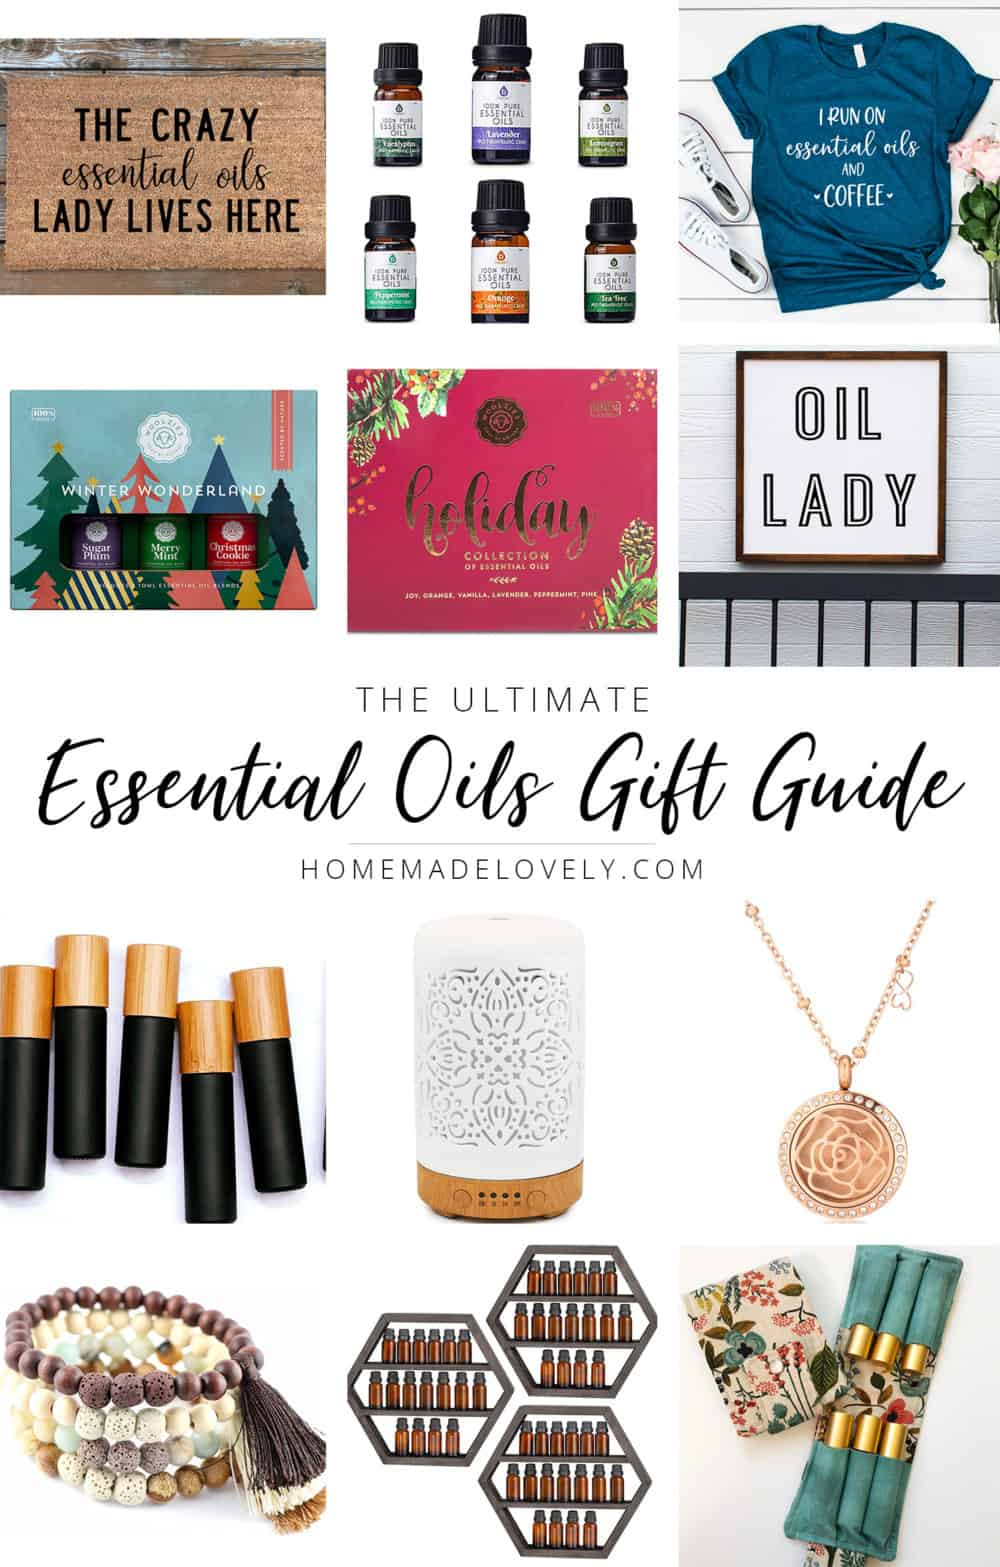 Essential Oils Gift Guide pin 1 copy